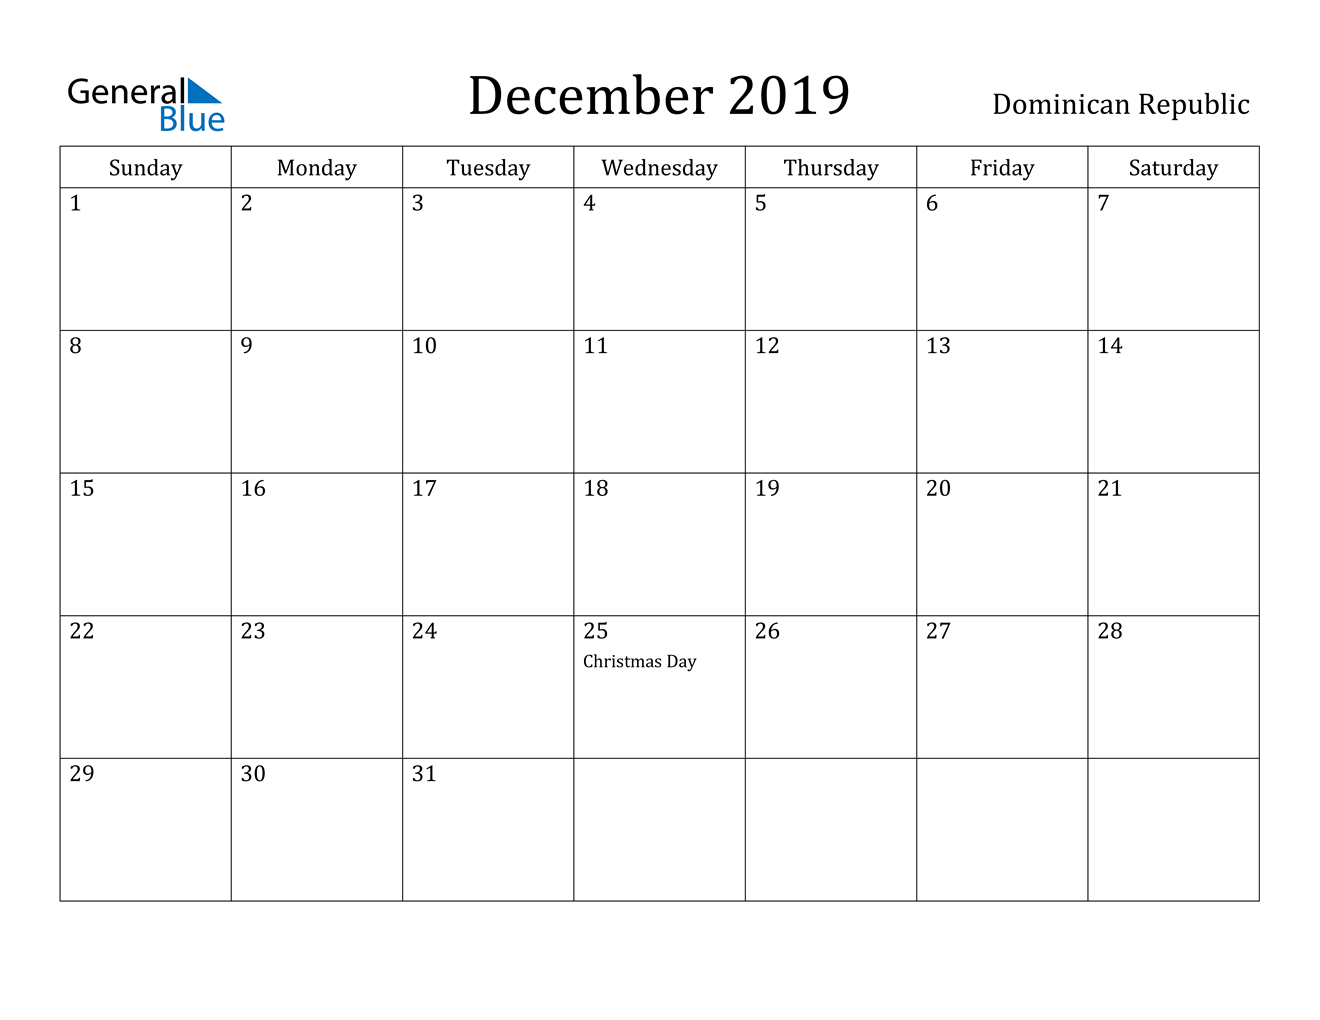 Image of December 2019 Dominican Republic Calendar with Holidays Calendar